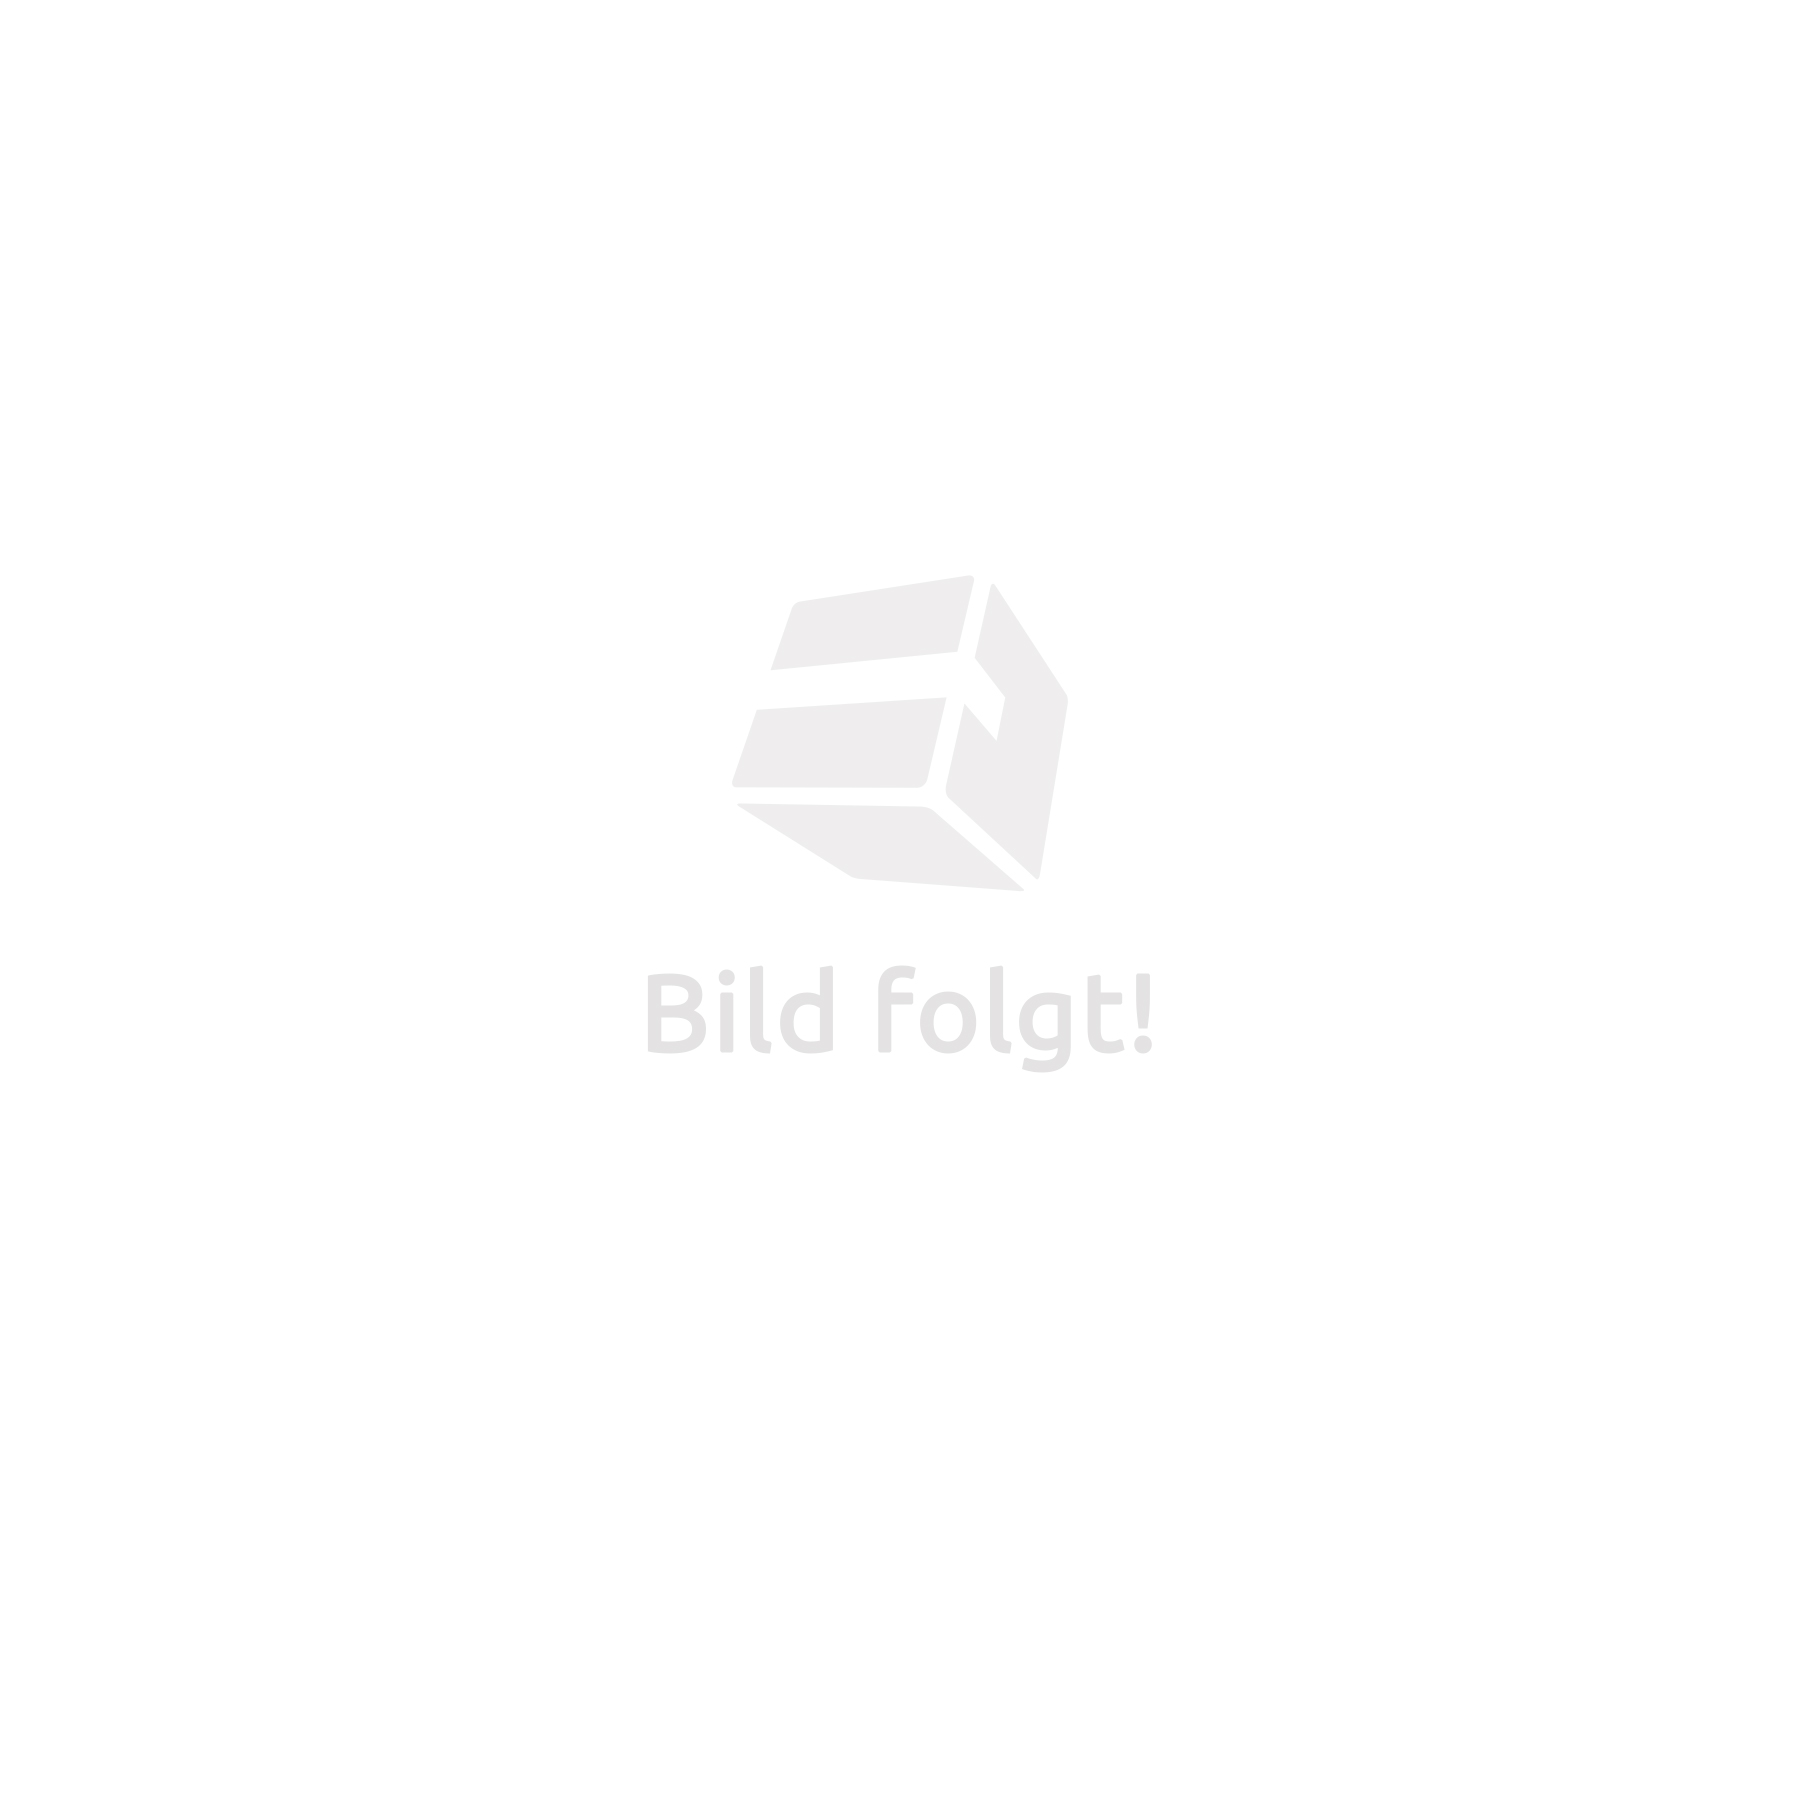 Rattan garden furniture set chairs sofa table outdoor for Balkon sofa